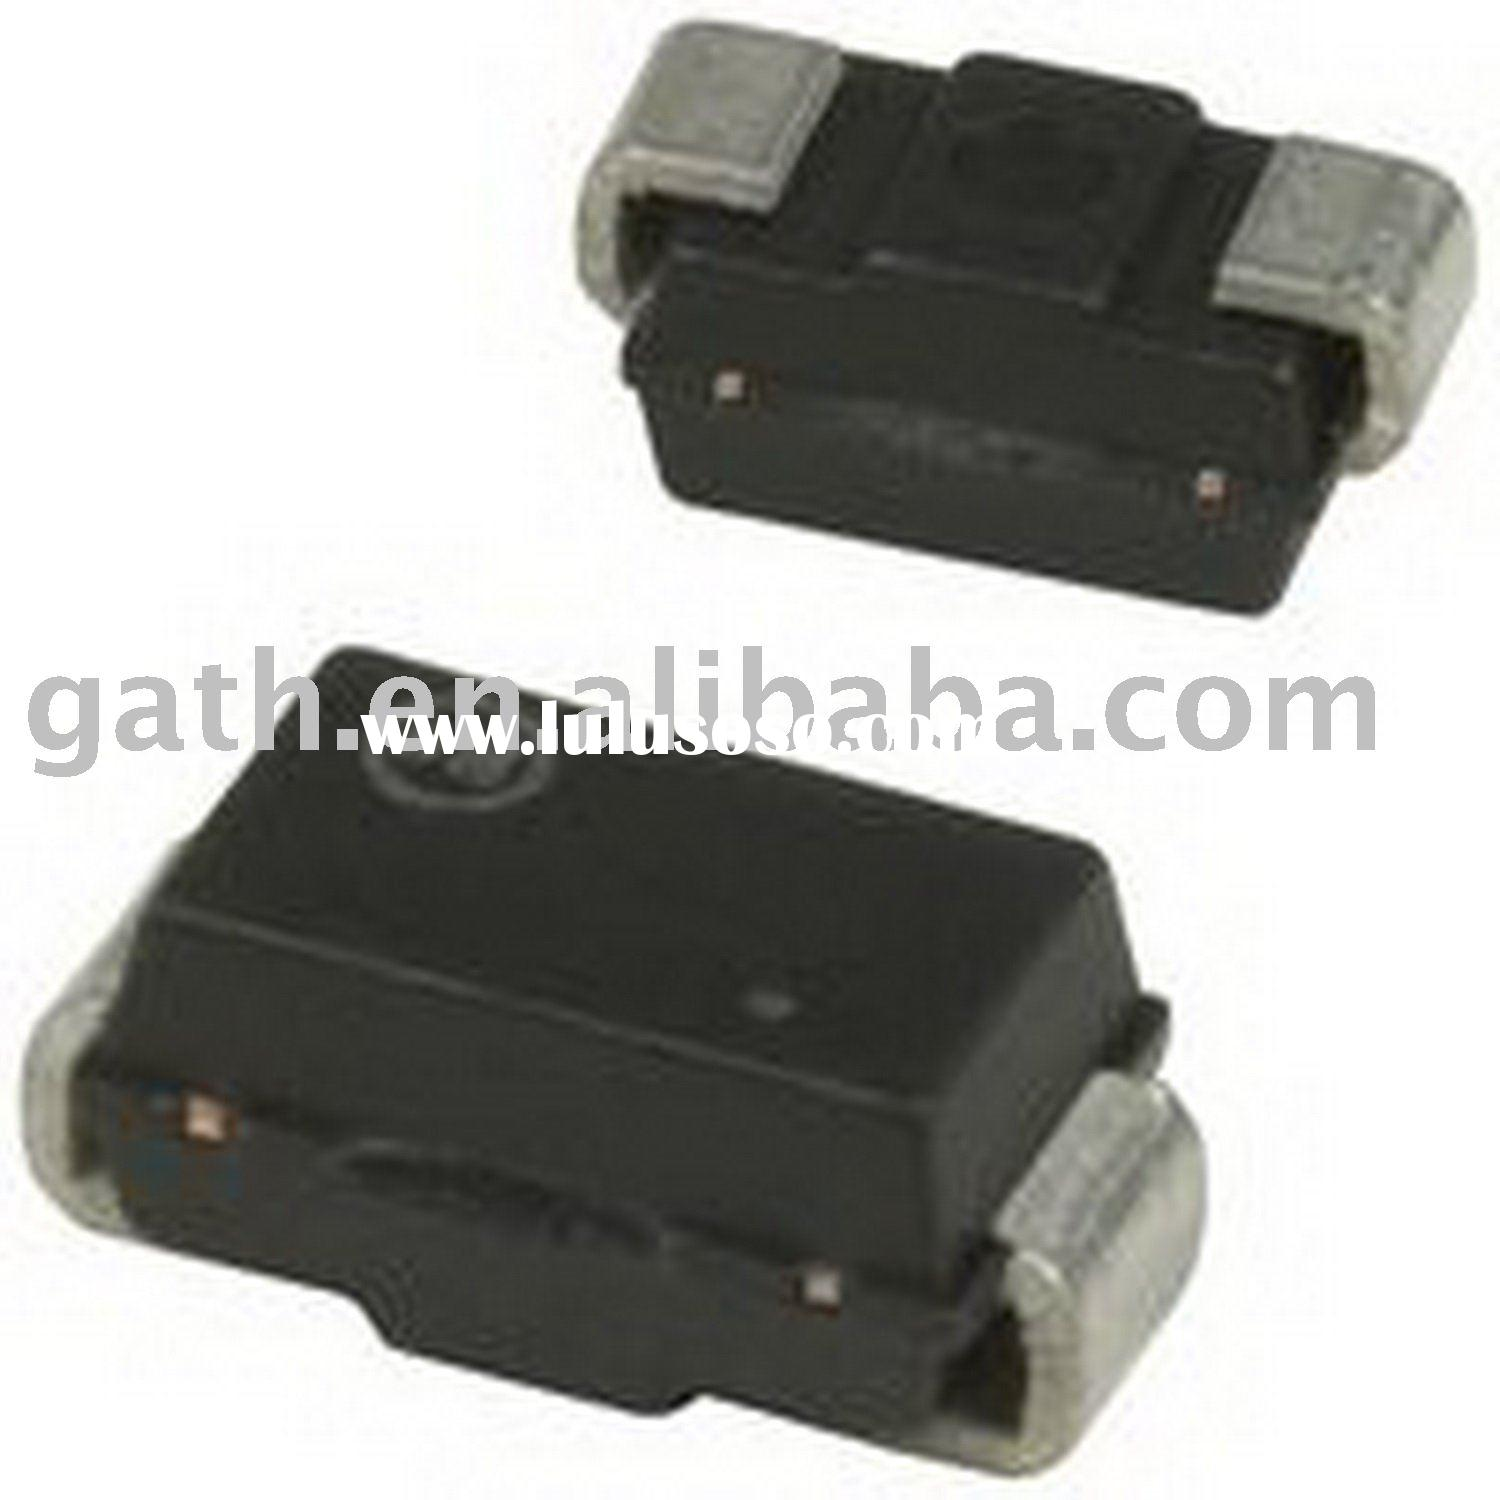 3 Watt Plastic Surface Mount Zener Voltage Regulators,